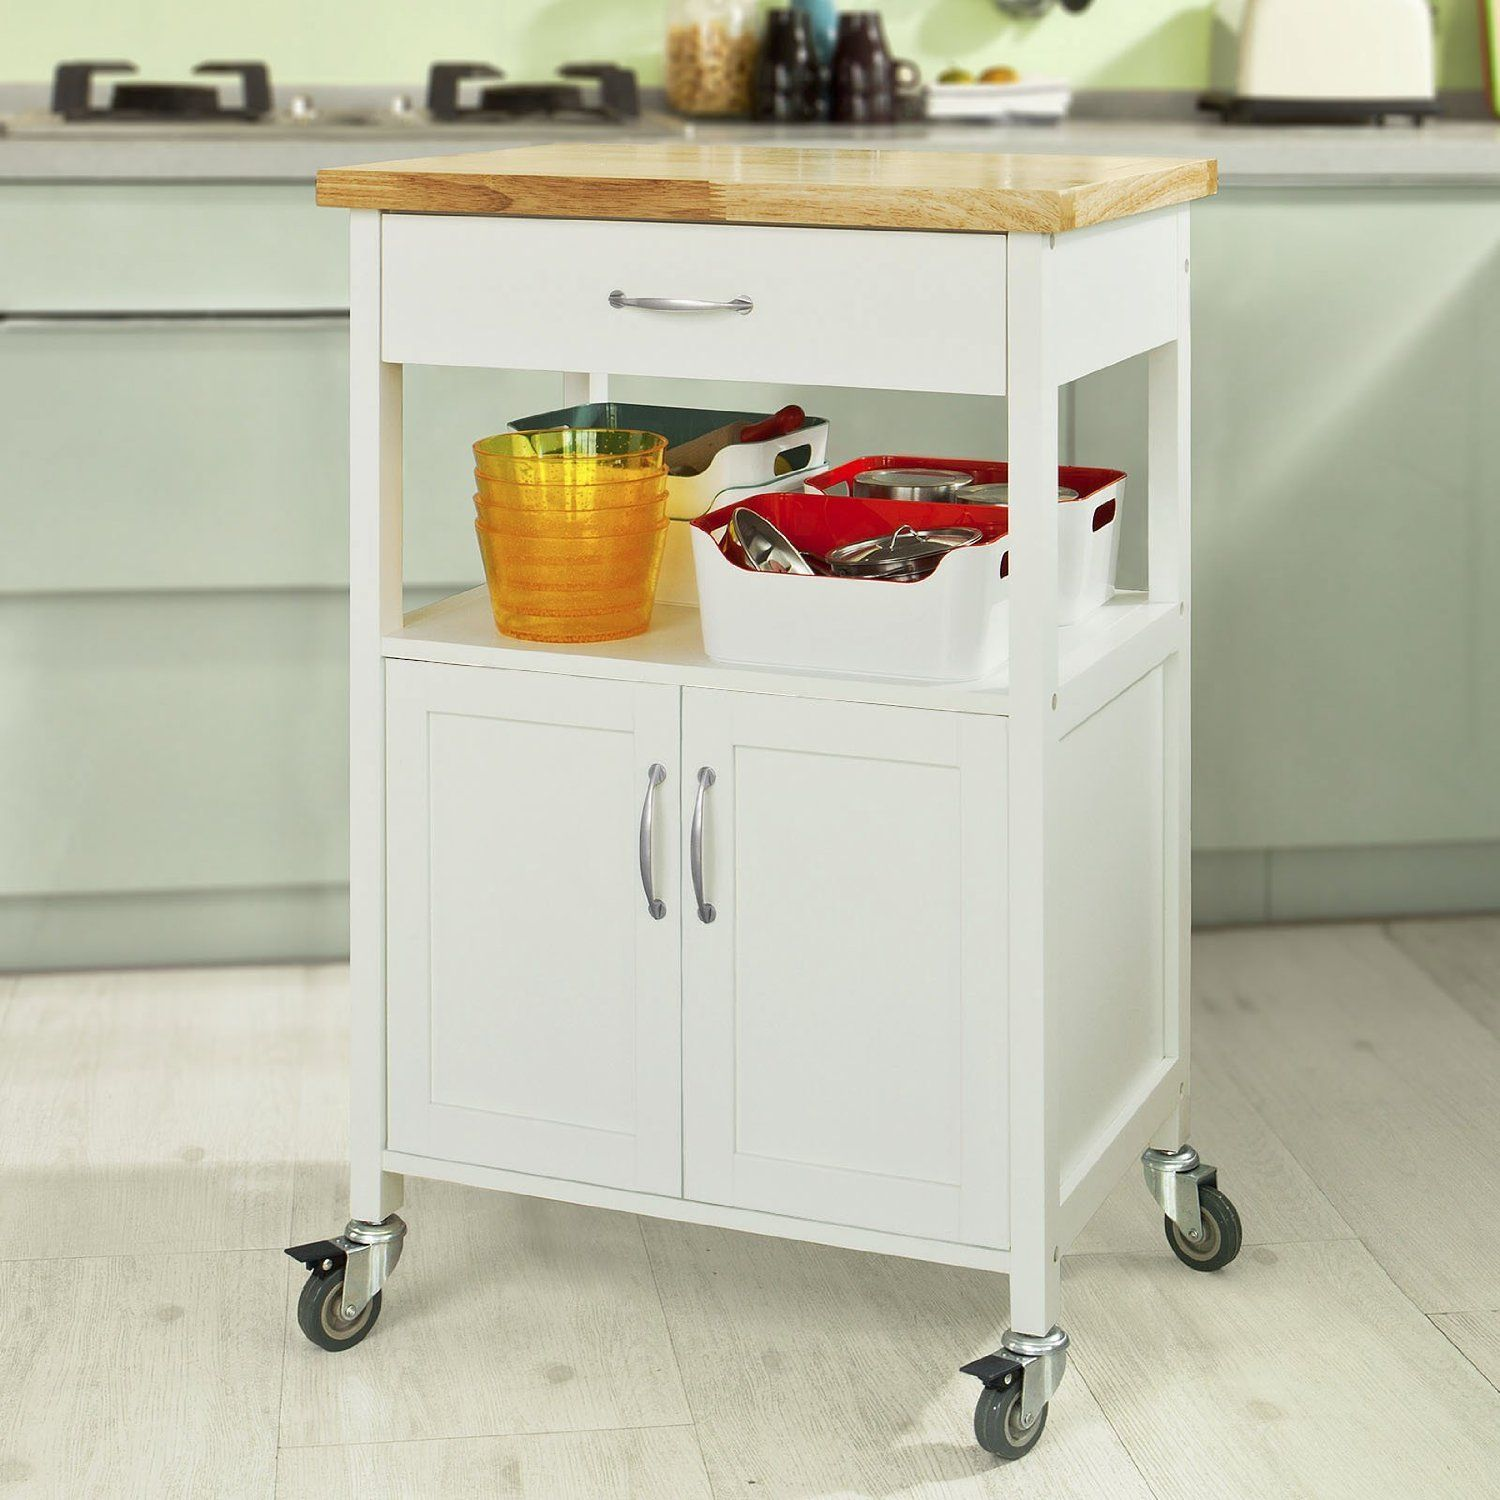 coffee cart for office | Office | Pinterest | Coffee carts